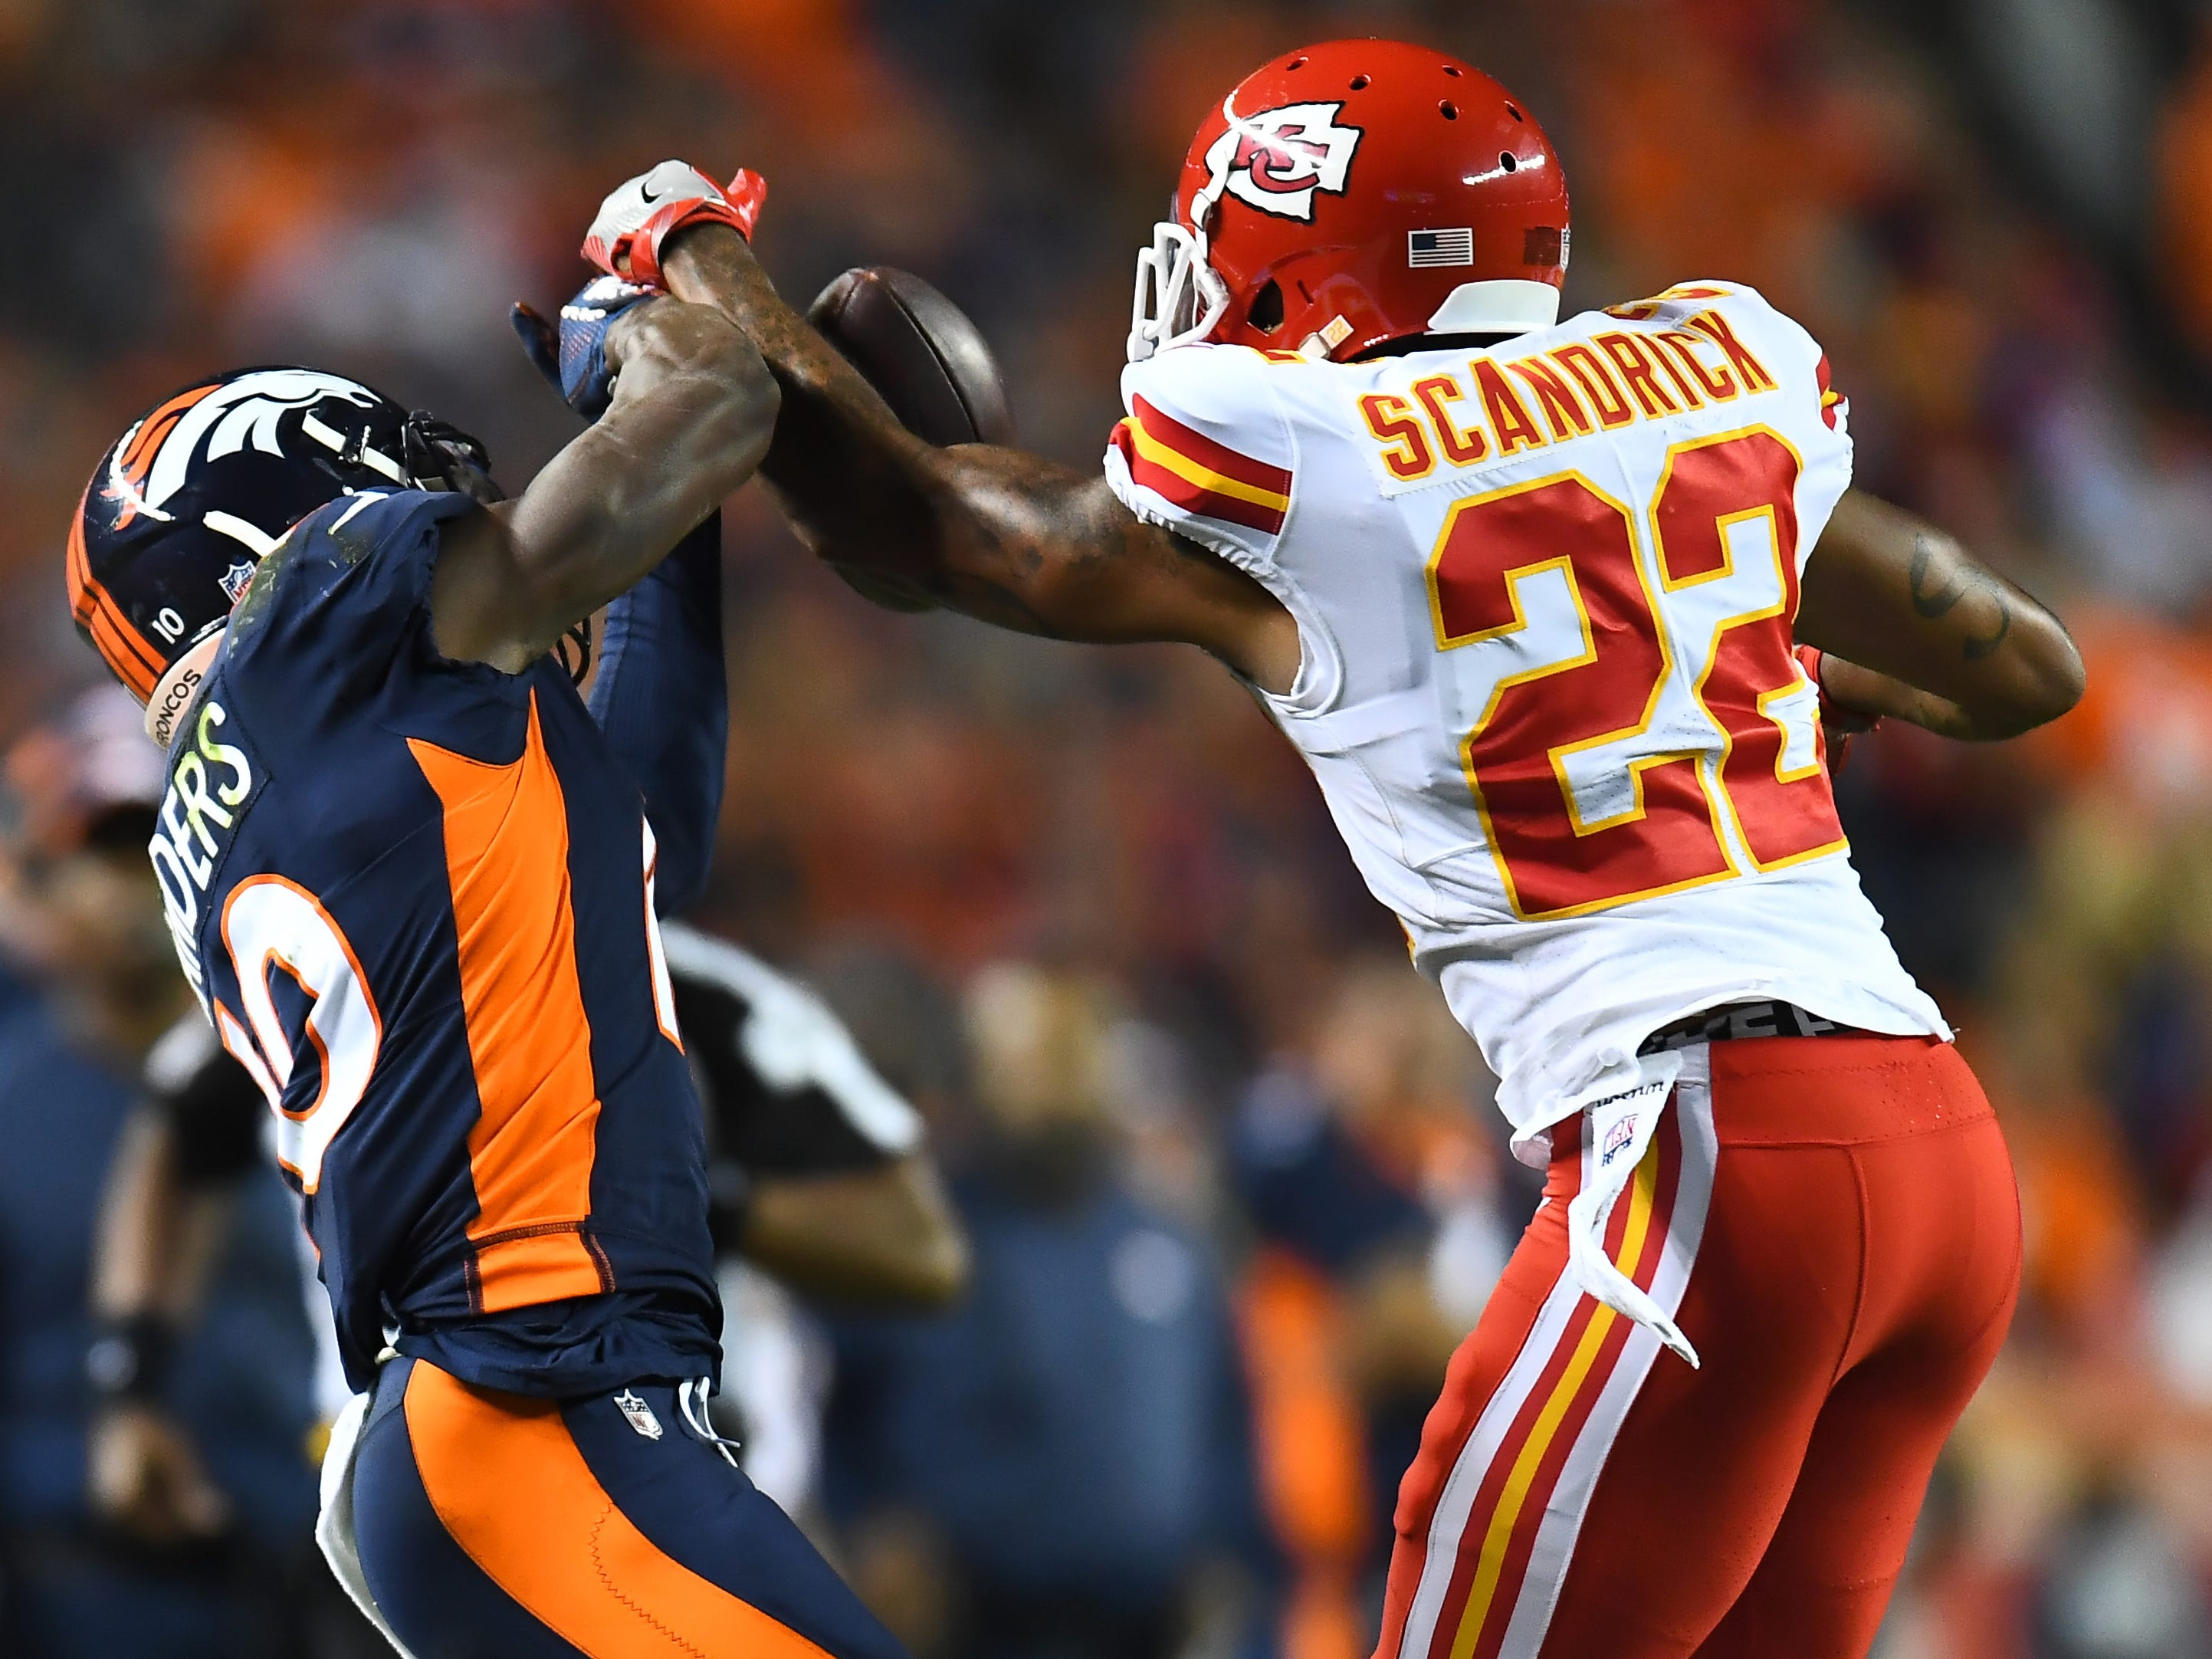 Kansas City Chiefs defensive back Orlando Scandrick breaks up a pass to wide receiver Emmanuel Sanders during the second quarter at Broncos Stadium at Mile High.